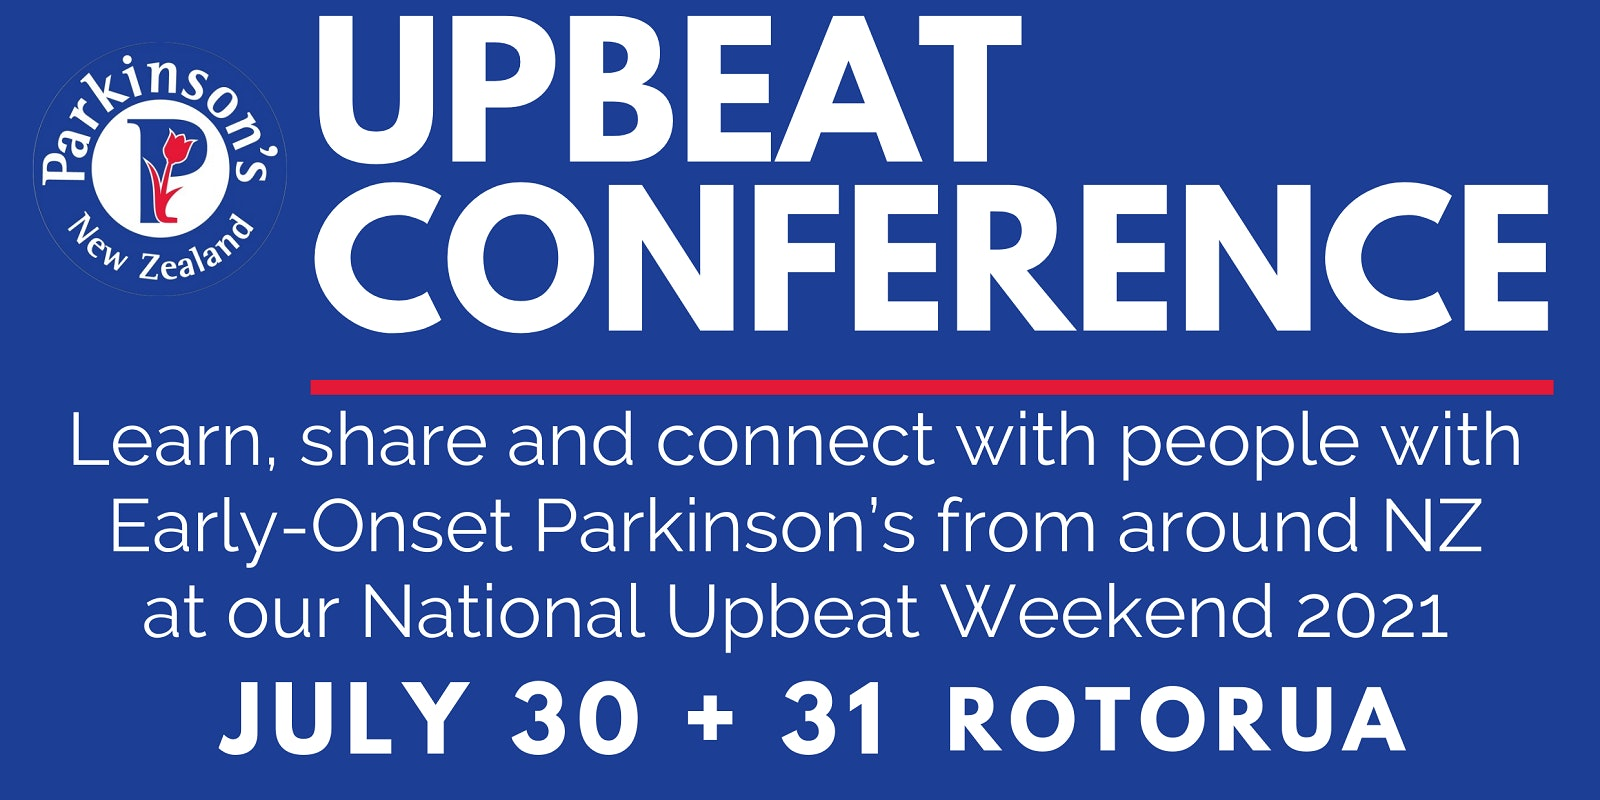 National UpBeat Weekend 2021